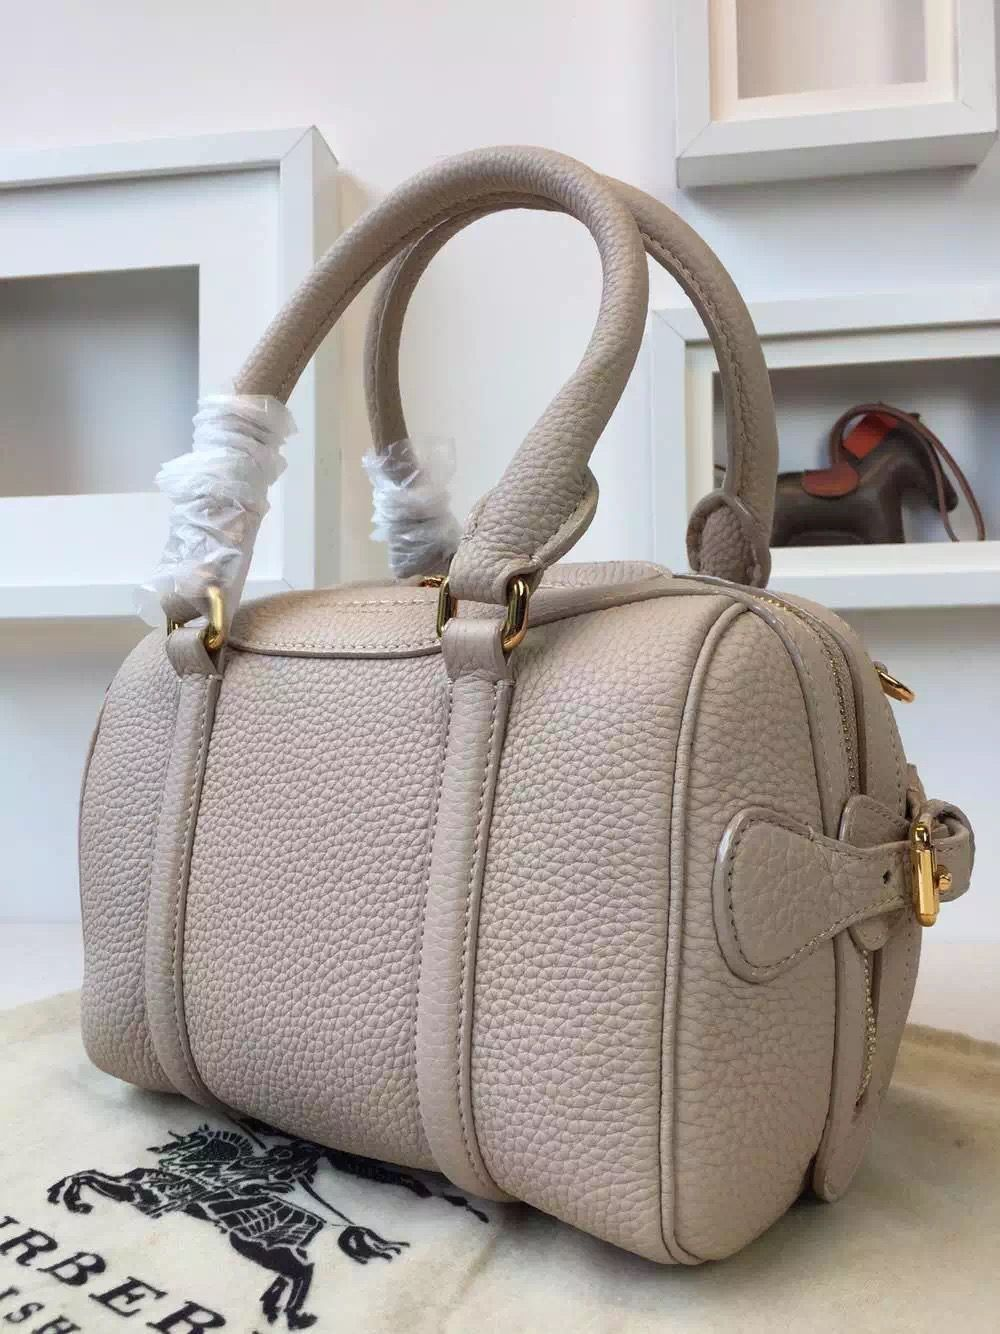 Burberry 39733391 The Mini Bee In Grainy Off-White Leather 2015 ... bb6e0d05f76dd